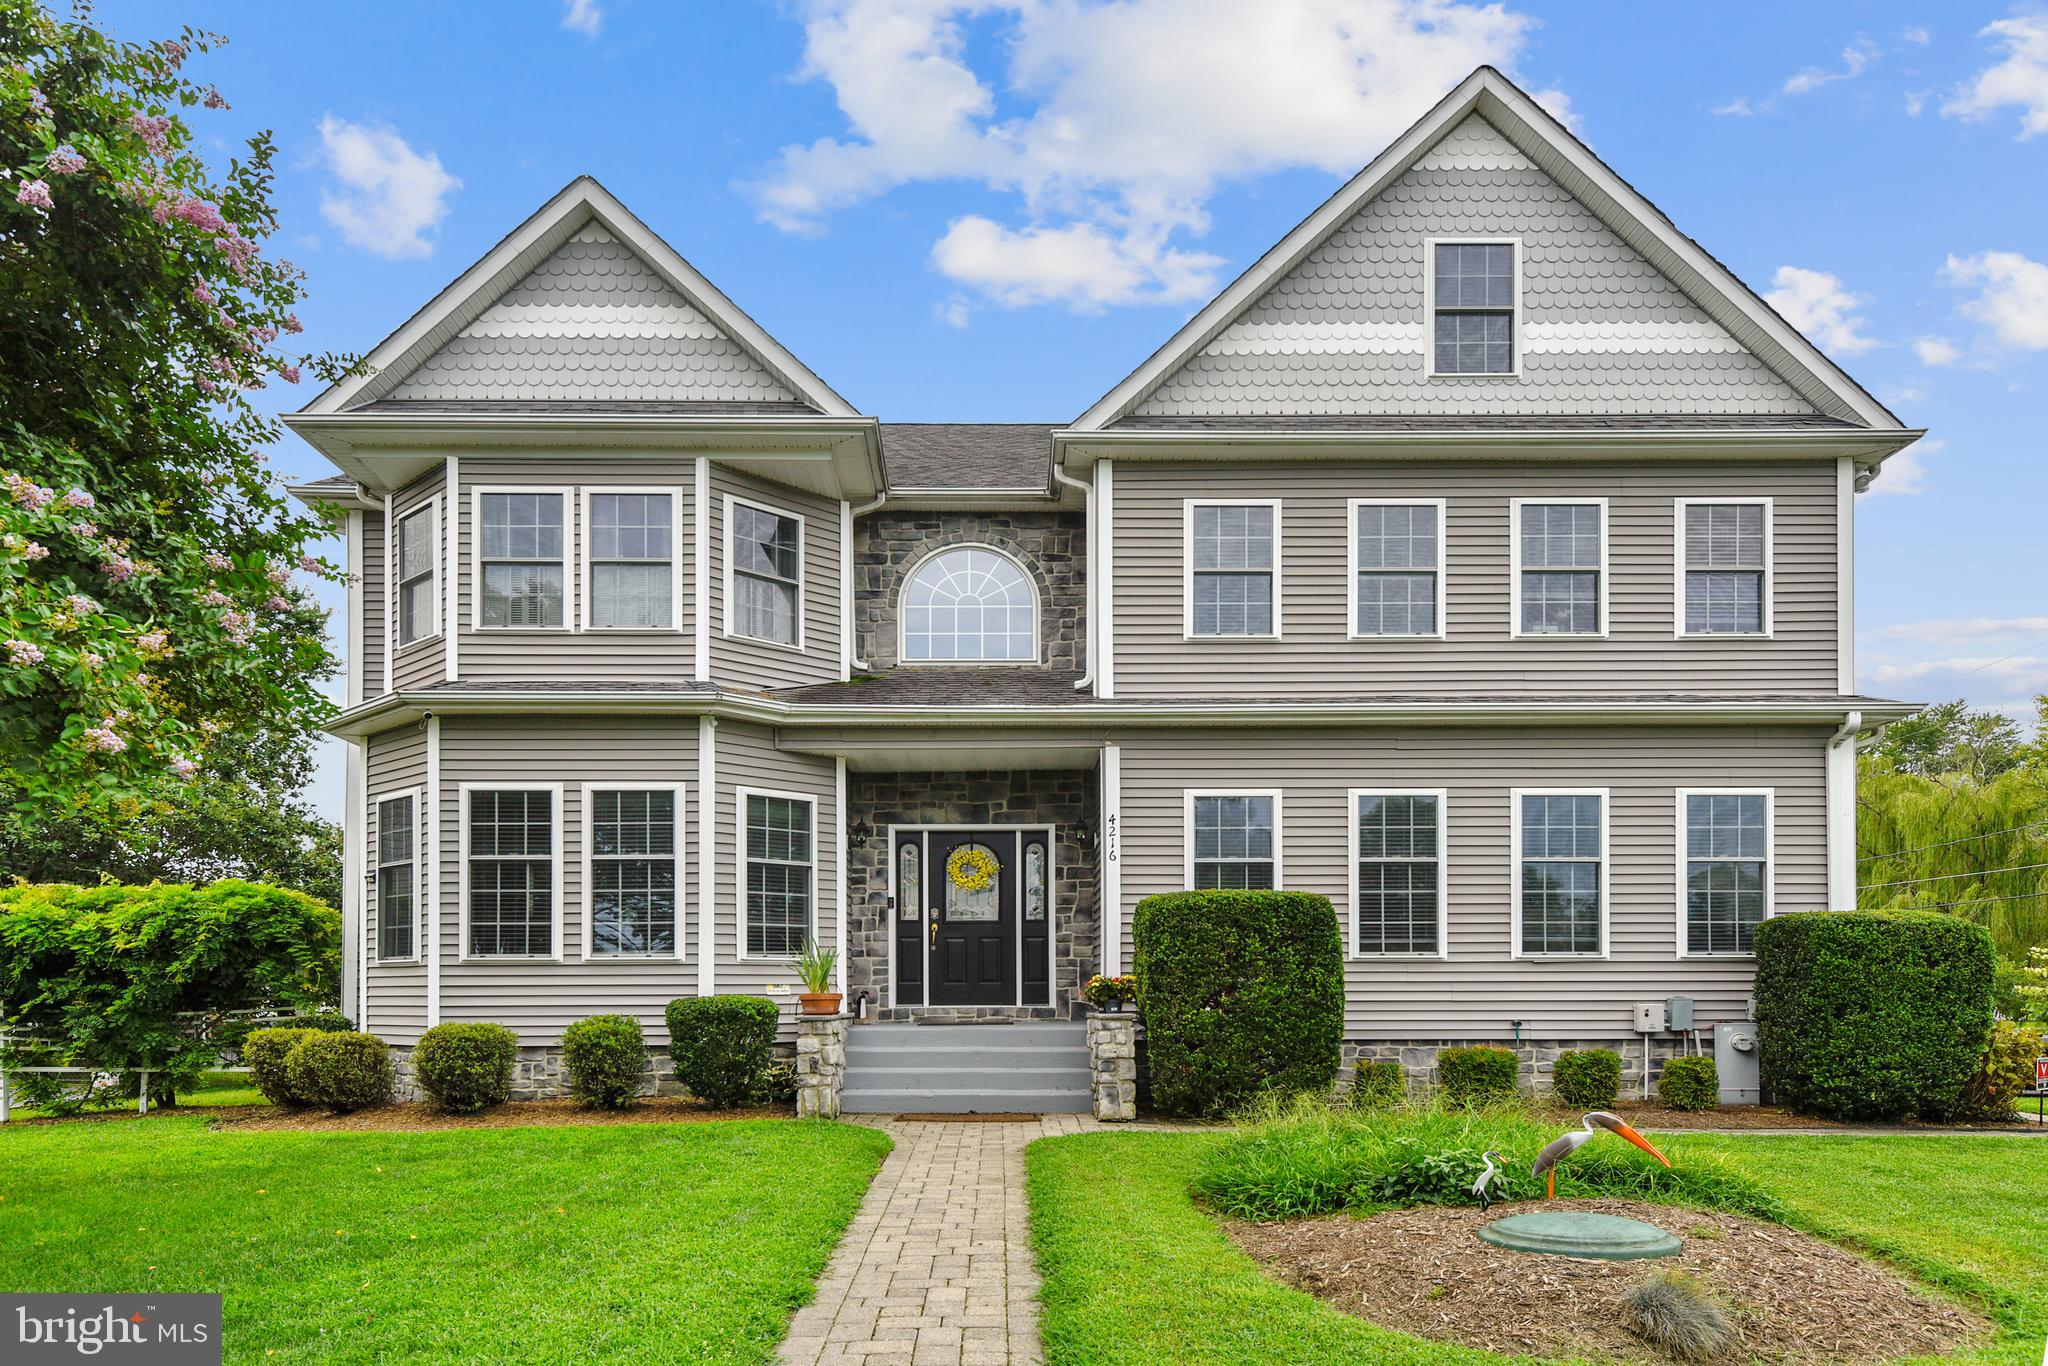 Beautiful, spacious custom-built water view home in the sought-after neighborhood of Saunders Point. This house has four amazing finished levels with tons of charm and detail situated between the Chesapeake Bay, Triton Beach Park, and Mayo Beach Park all within walking distance. The main level has hardwood floors throughout; a large open kitchen with granite countertops with plenty of counter space. The kitchen includes an eat-in area, seating at the island, and a large space for family dining all open to the family room with a cozy fireplace. Also on the first floor, spacious den/office/homework room. The second floor has a large master bedroom filled with natural light, including a spa-like bathroom with bidet; double vanity/sinks; whirlpool bathtub; five heads, double walk-in shower. There are 3 ample-sized bedrooms each with walk-in closets on the second floor as well, sharing a full bath with a jacuzzi tub. Large laundry room with additional storage also on the same levels as bedrooms. The entire second level has all new hardwood flooring as well.  Head up to the third floor where your guest, au pair, or in-laws can relax in their private suite with a rec area and full bathroom. The basement has recreation space with a custom bar and plenty of room for storage recently updated paint and new carpets. This home affords you direct views of the Chesapeake Bay from all levels of the home. The rear and side yard have  a new maintenance free white picket fence.   Saunders Point offers the best of waterfront living, with close access to shopping, blue-ribbon schools, and DC/Baltimore/VA or Annapolis. Don't miss out on this one.